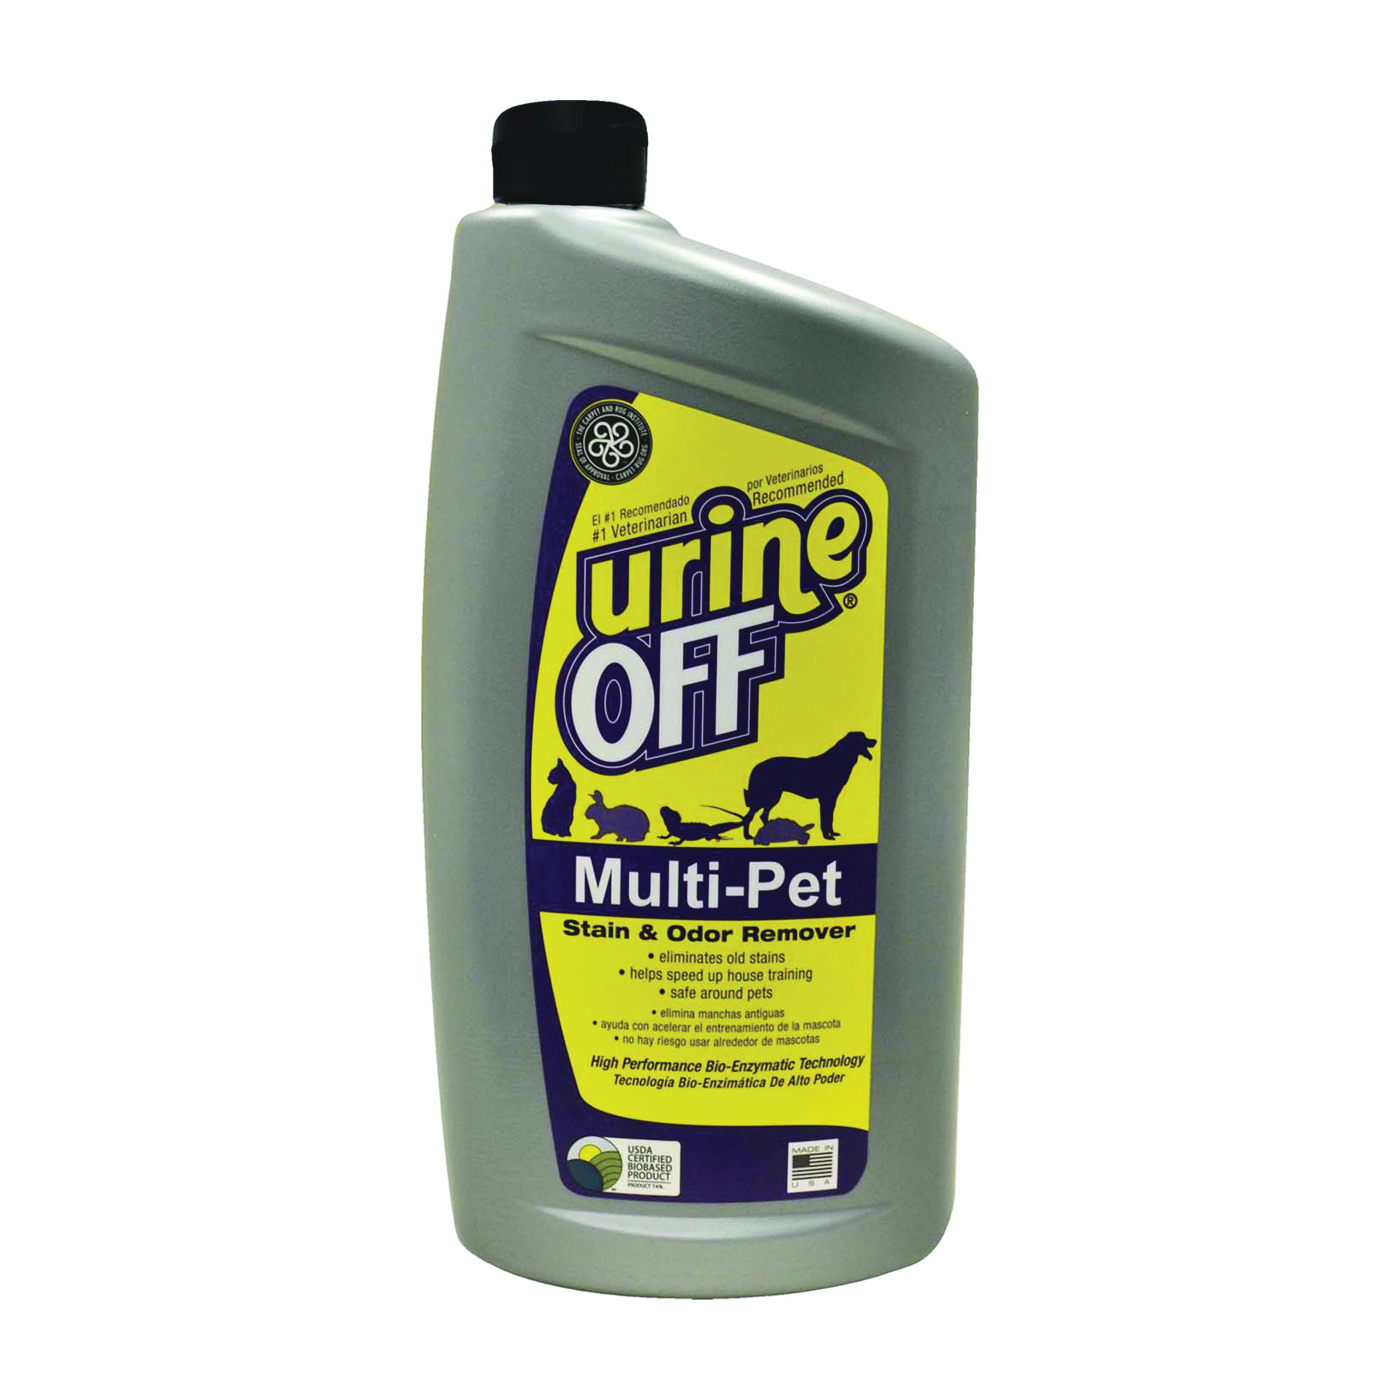 Picture of urine OFF MR1050 Stain Remover, Opaque Liquid, Floral, 32 oz Package, Bottle